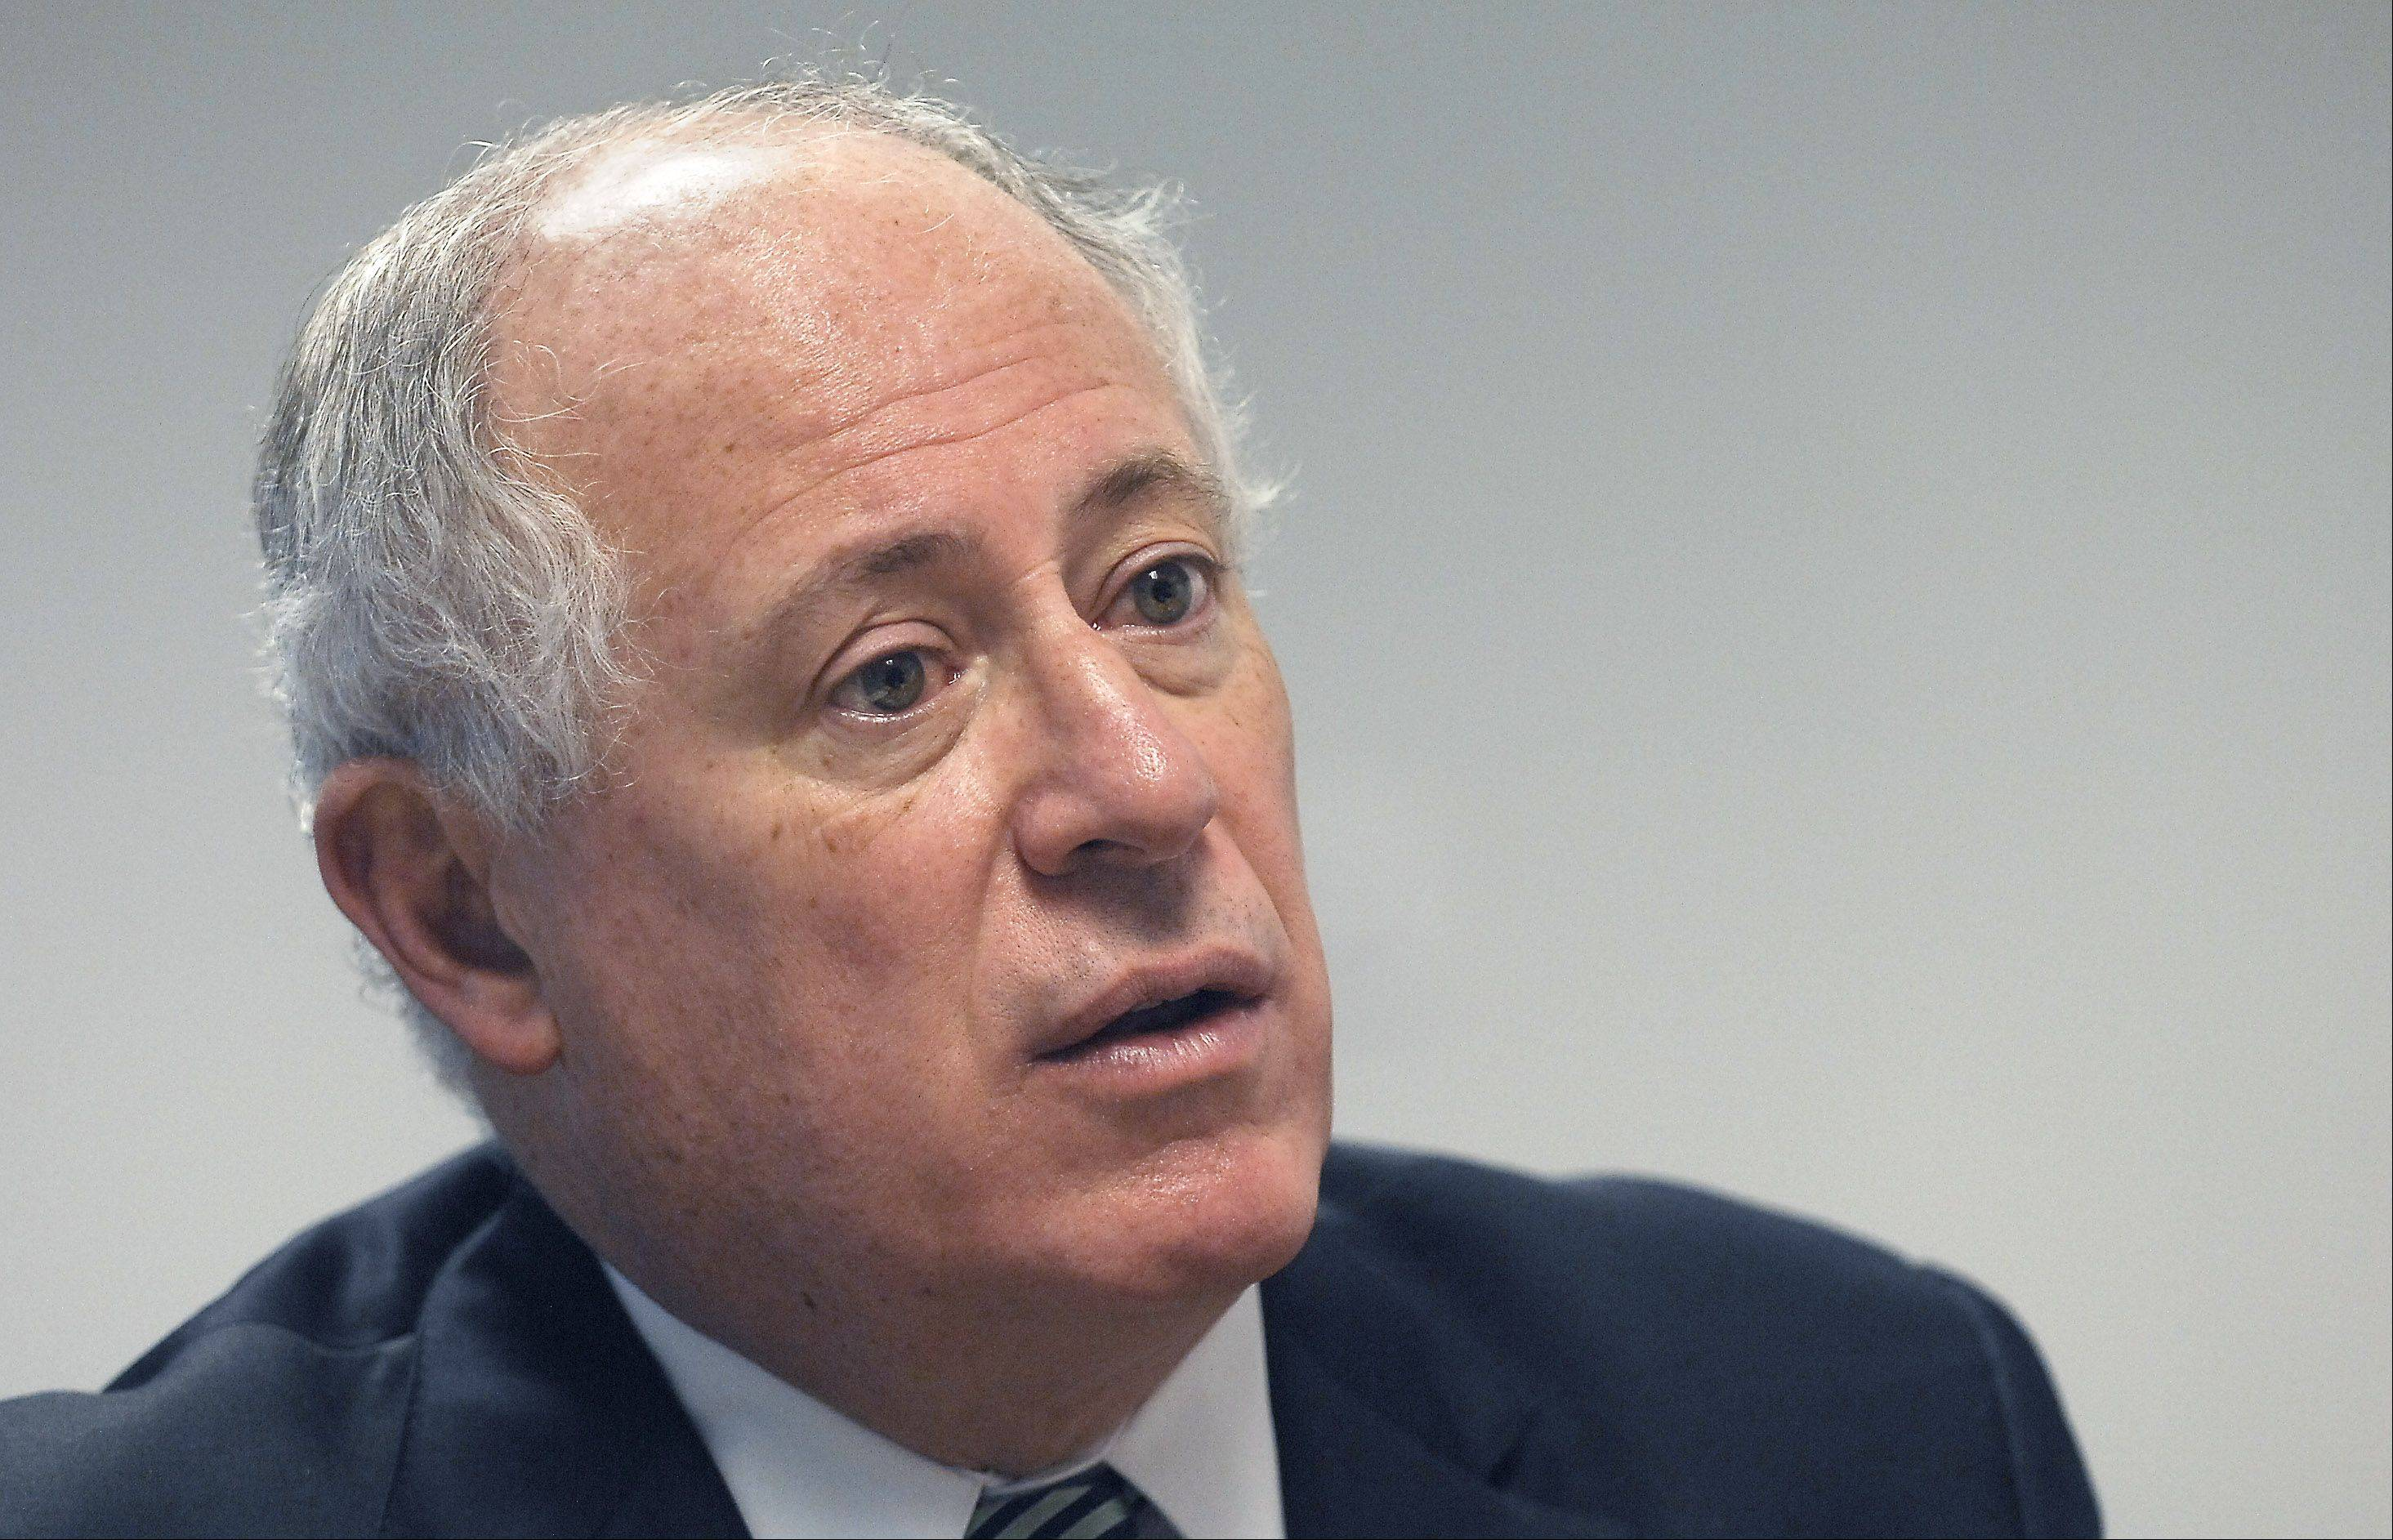 Gov. Pat Quinn attempted to suspend Illinois lawmakers' pay Wednesday, following through on his warning of consequences if they failed to end the state's nearly $100 billion pension crisis, the worst of any state nationwide.